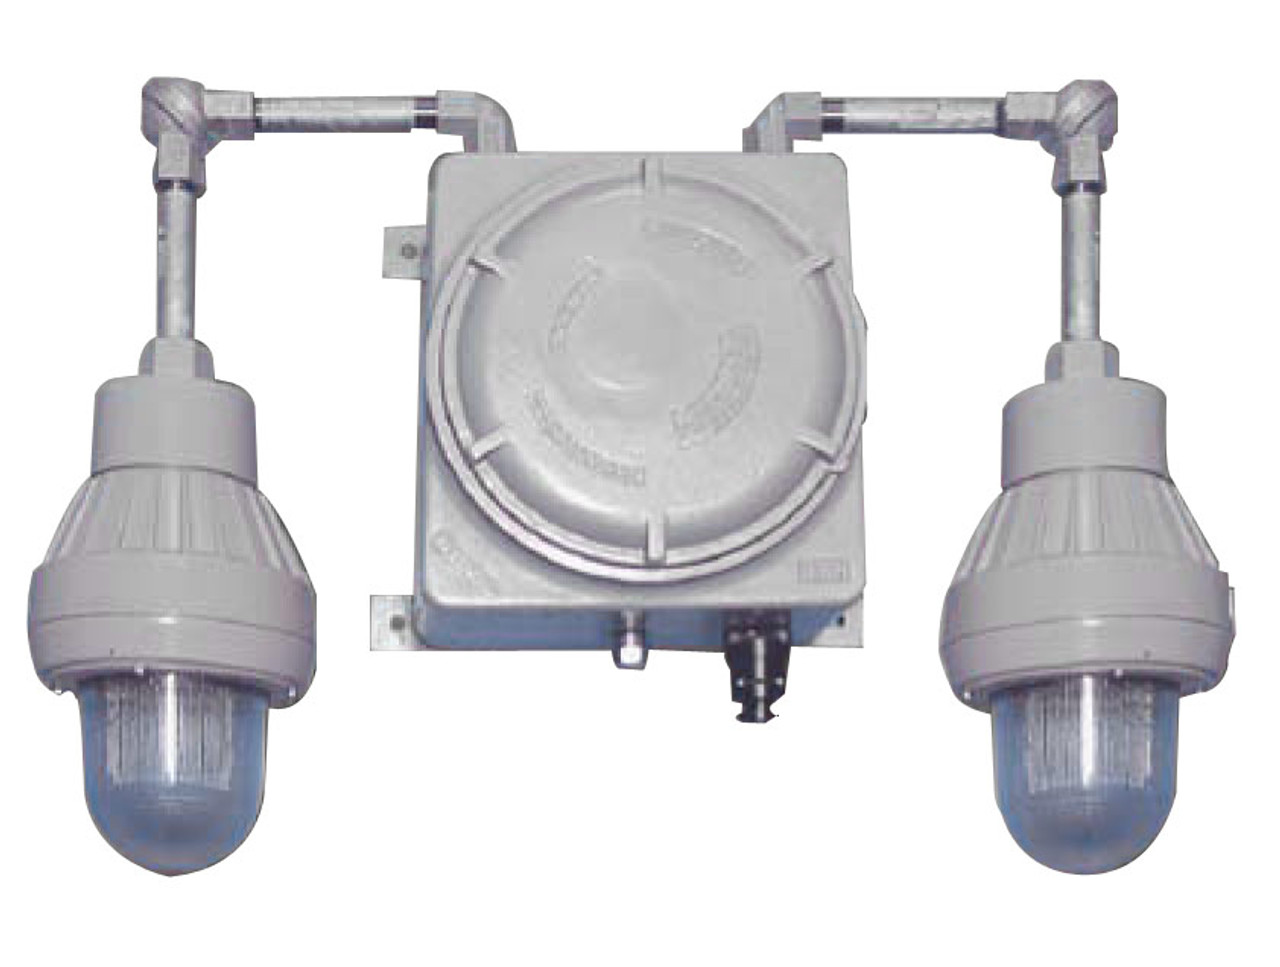 Class 1 Division 1 Emergency Light with Two Lamps